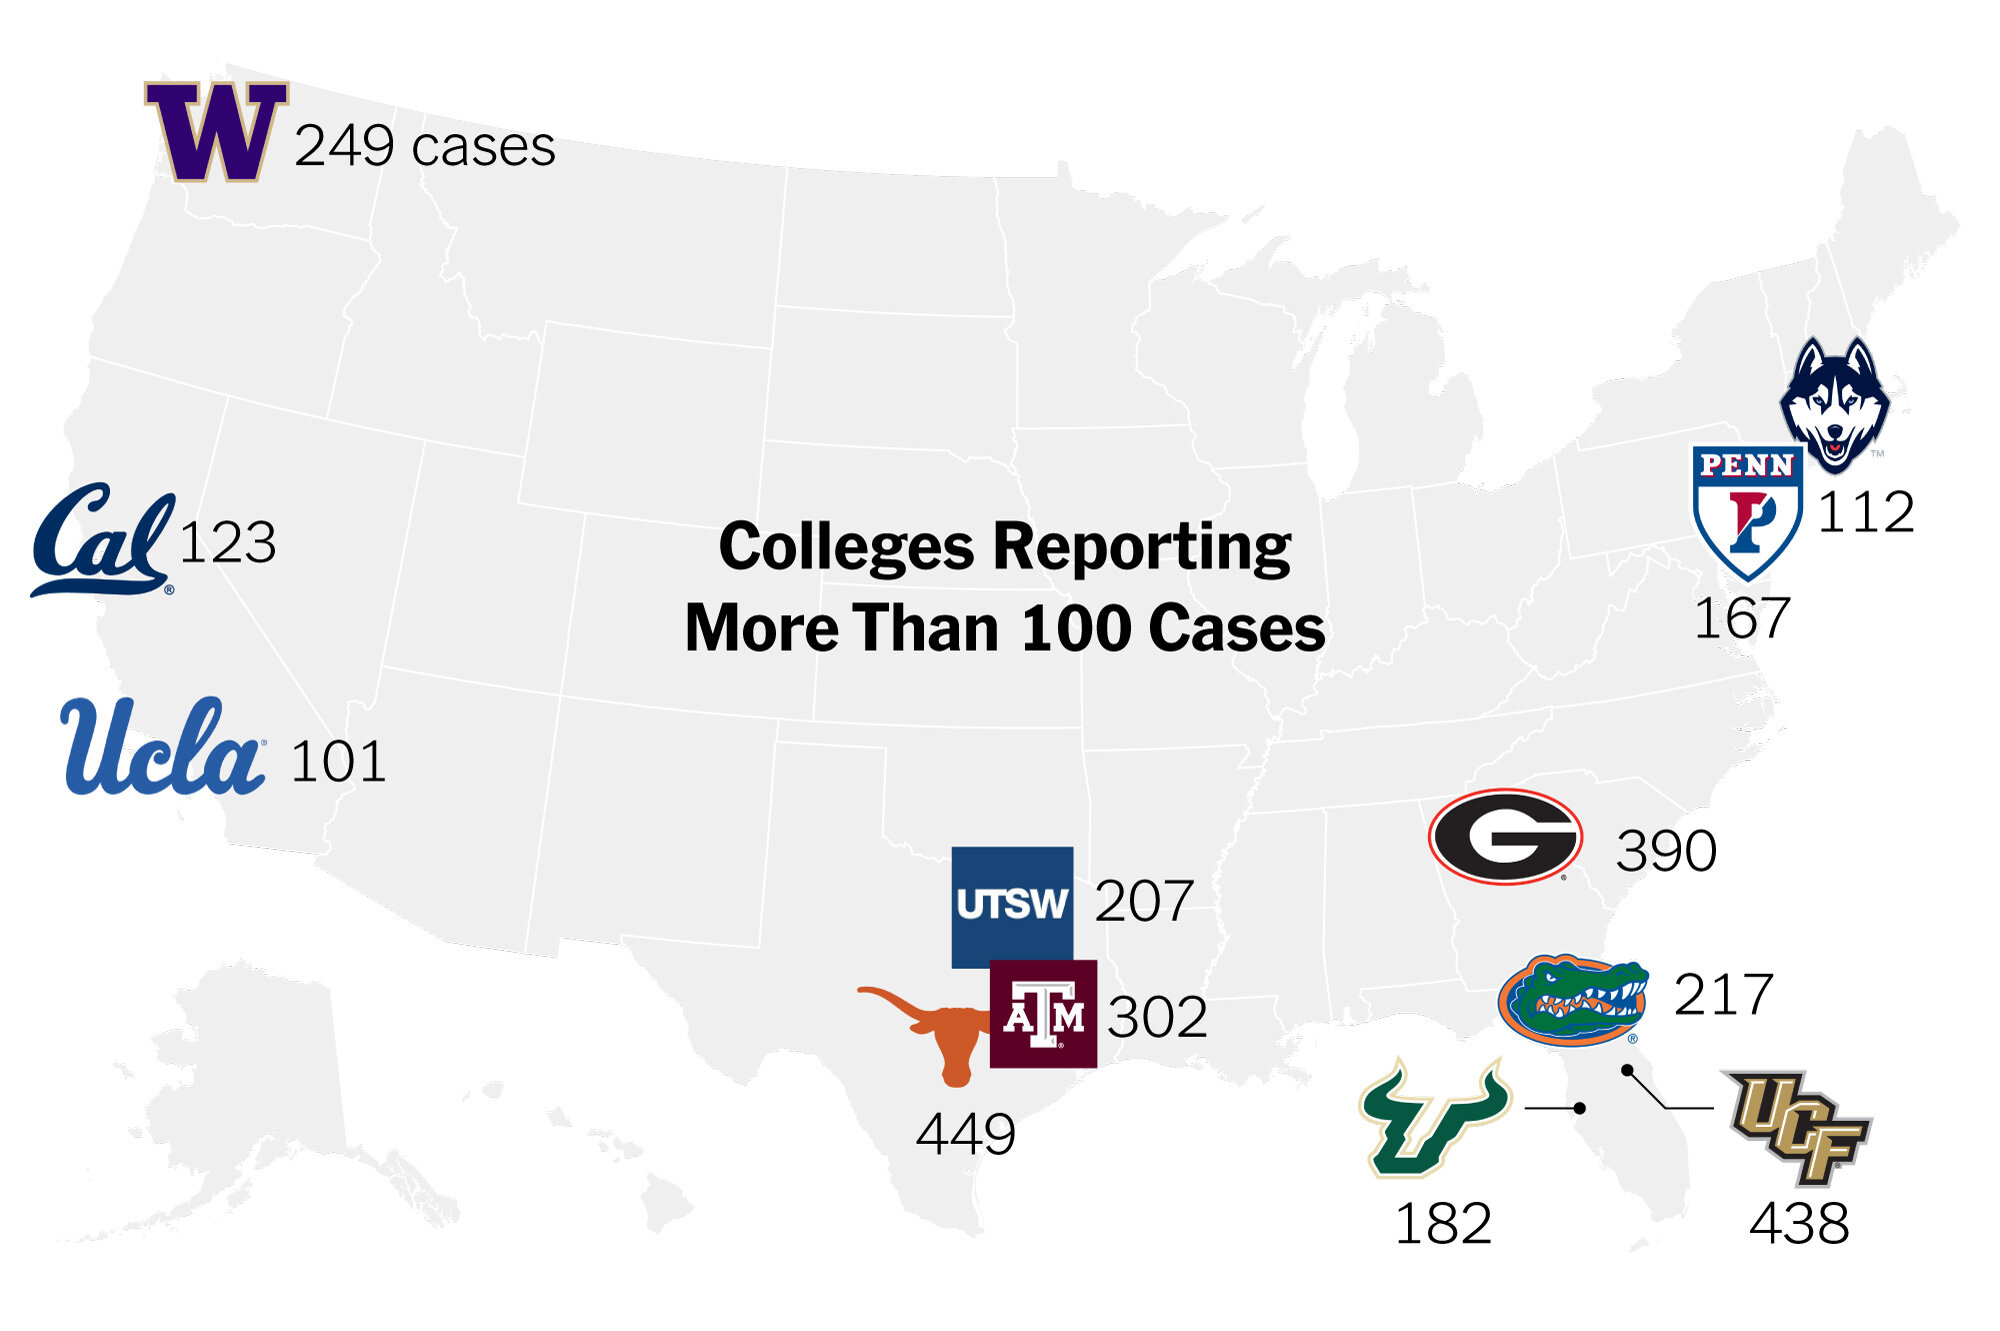 12 universities have reported more than 100 COVID-19 cases before fall classes